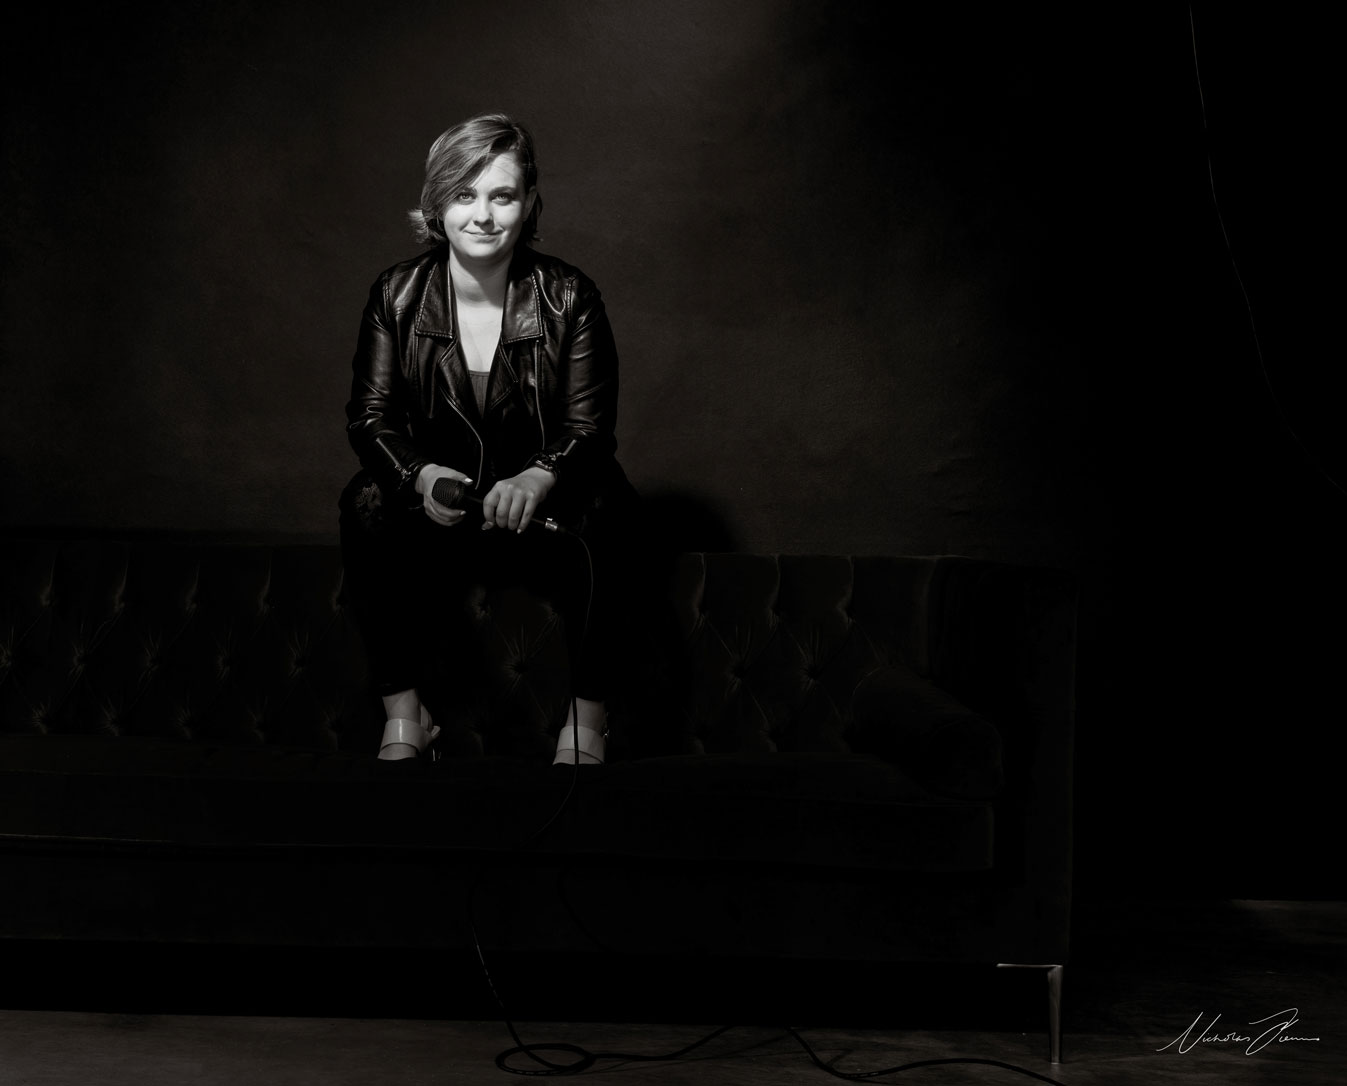 Black and white portrait of Sydney singer Jemma Charlin, perched on sofa holding microphone.